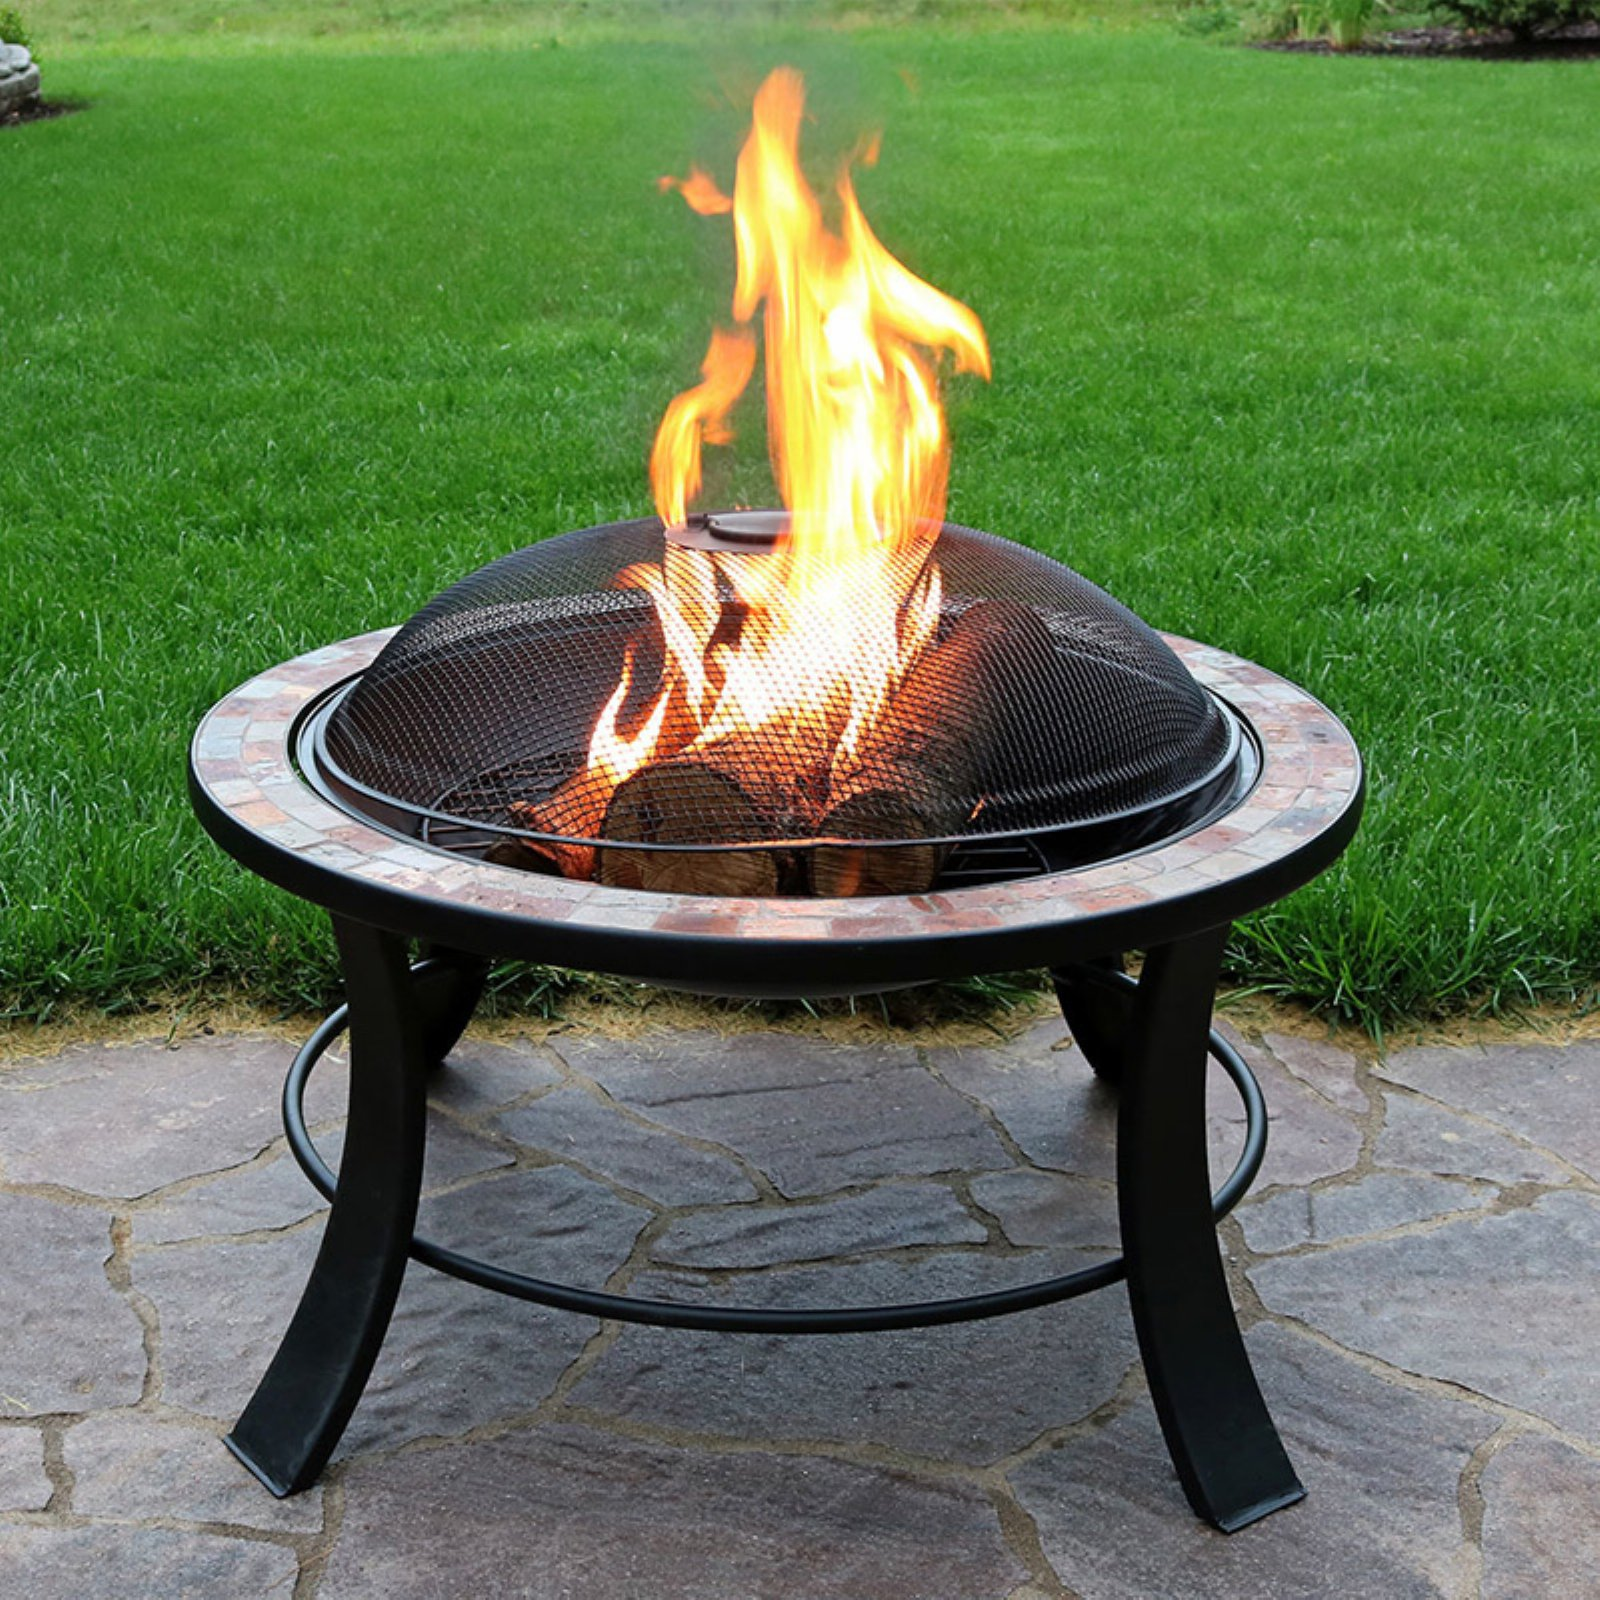 Sunnydaze Decor Natural Slate 30 Diam Fire Pit With Spark Screen Wood Burning Fire Pit Fire Pit Table Fire Pit